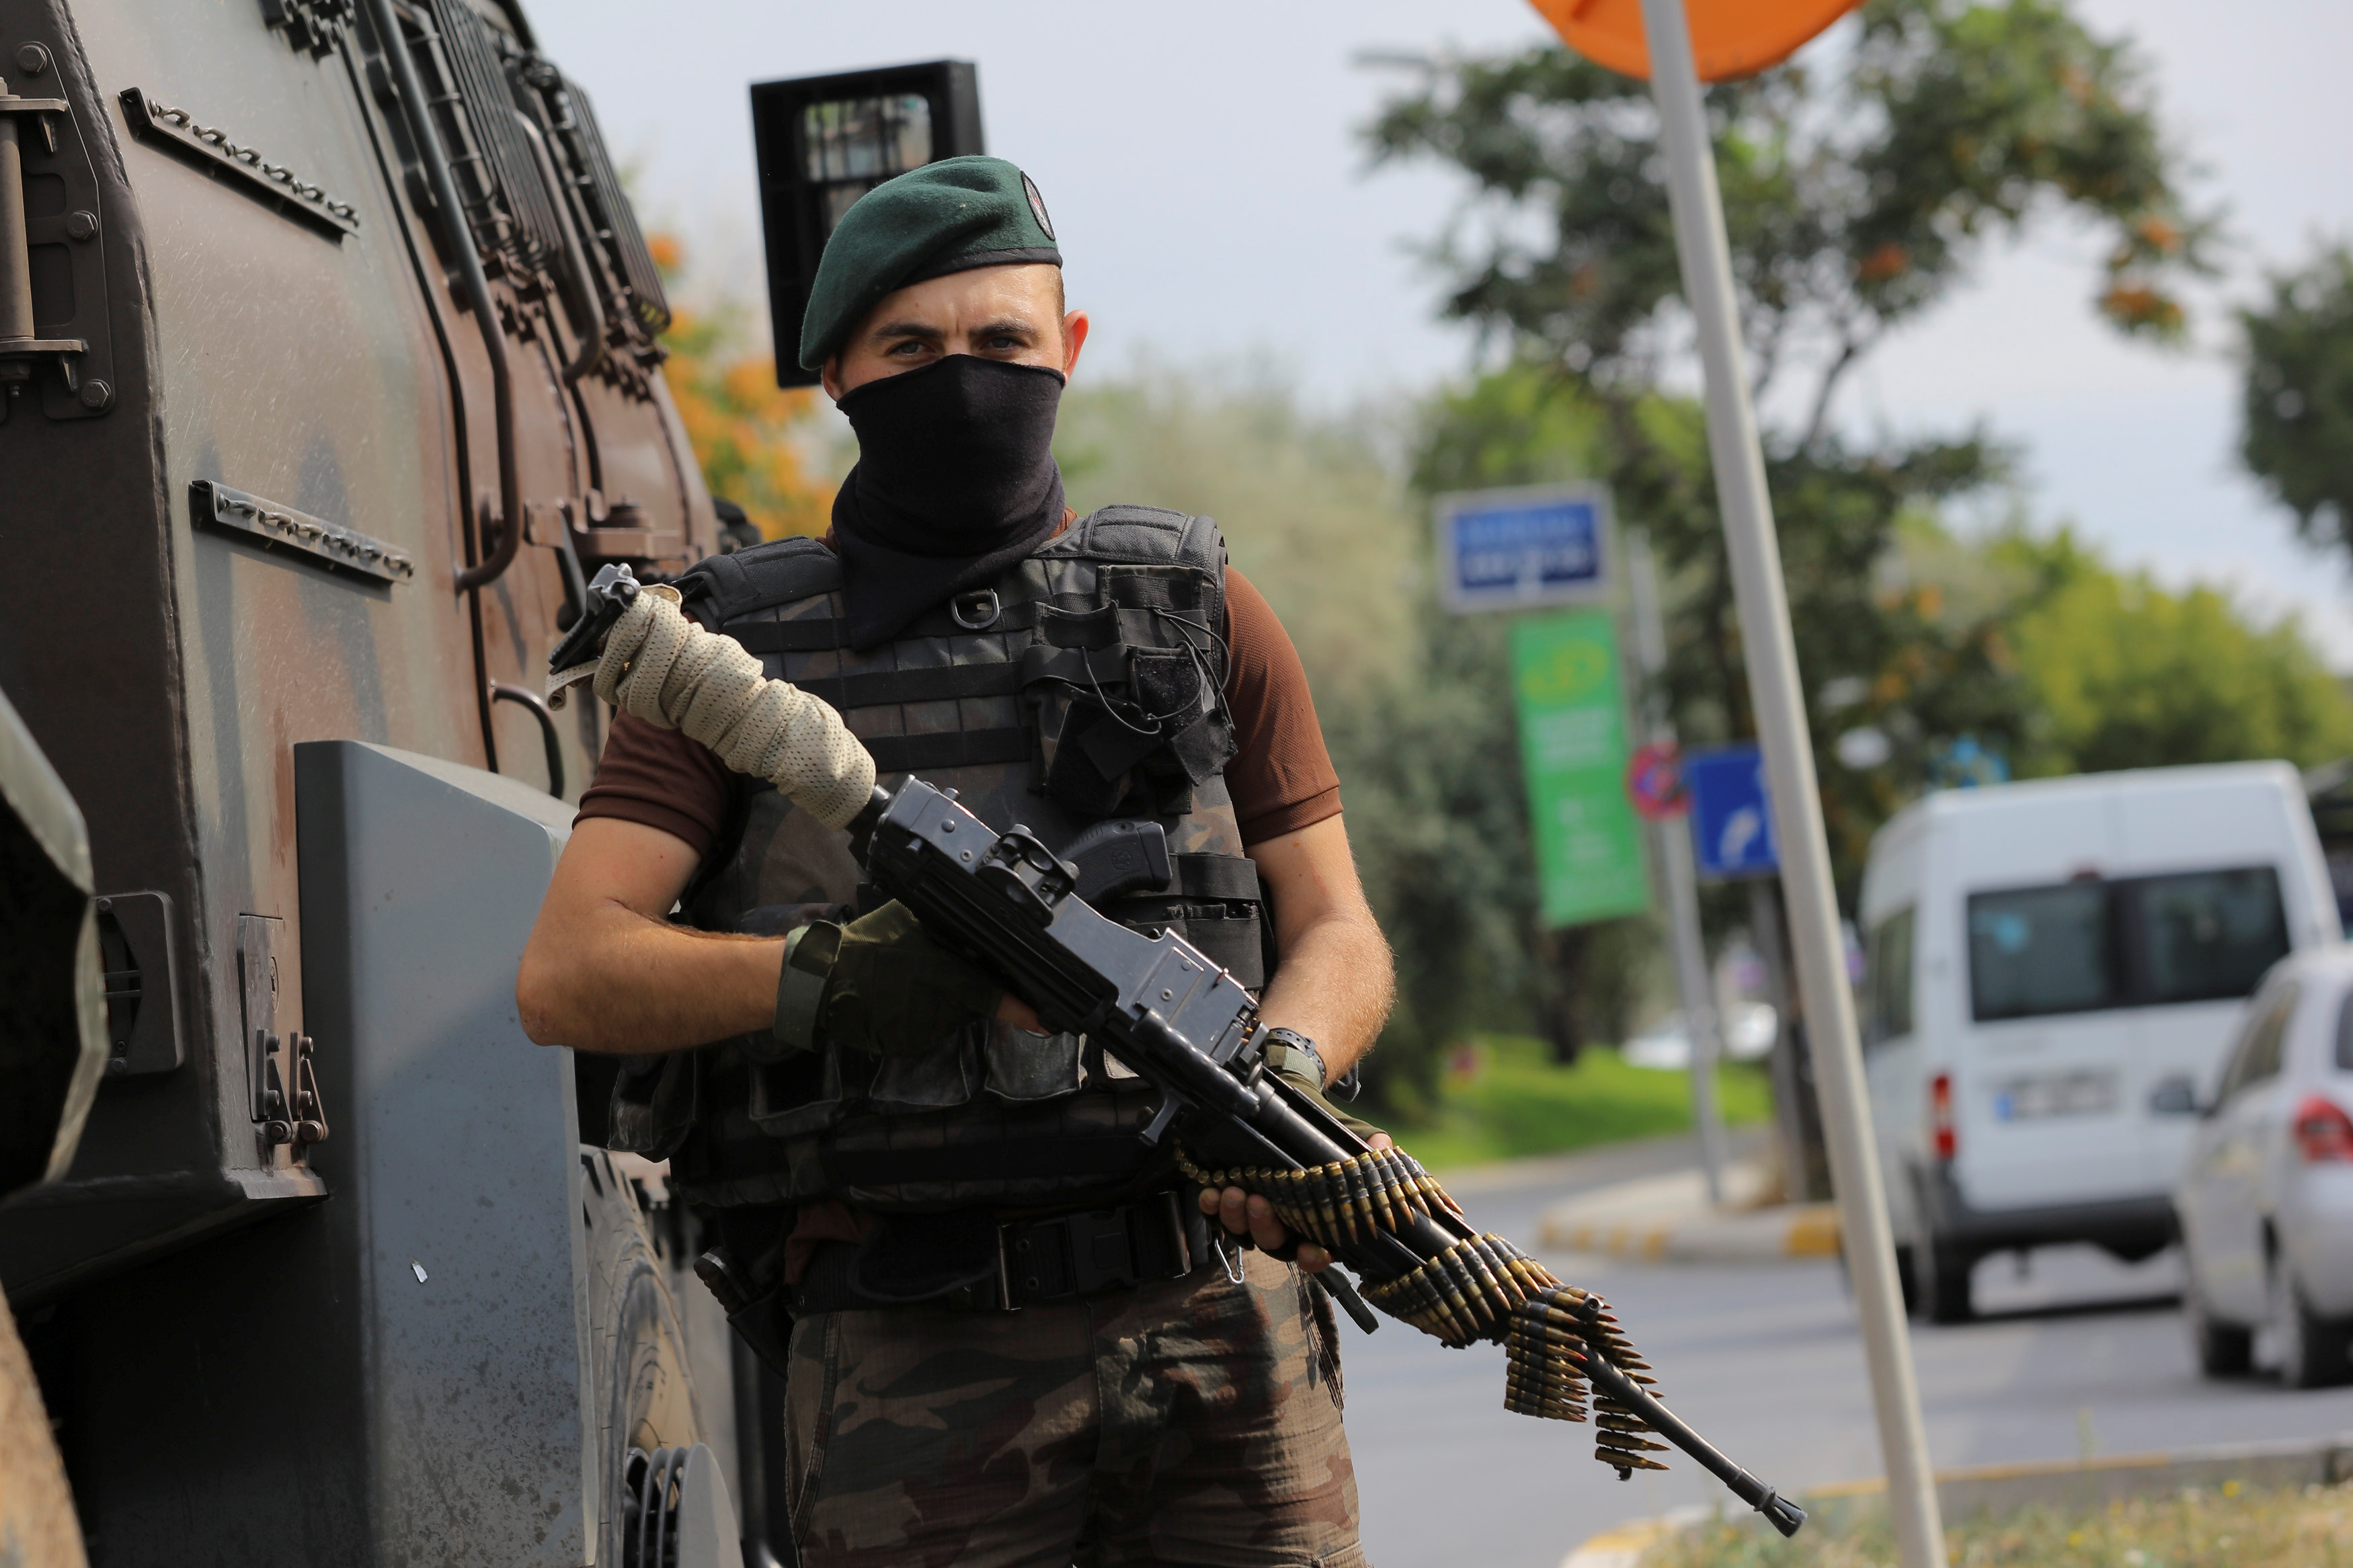 A police special forces member stands guard on a street in Istanbul, Turkey, July 18, 2016.